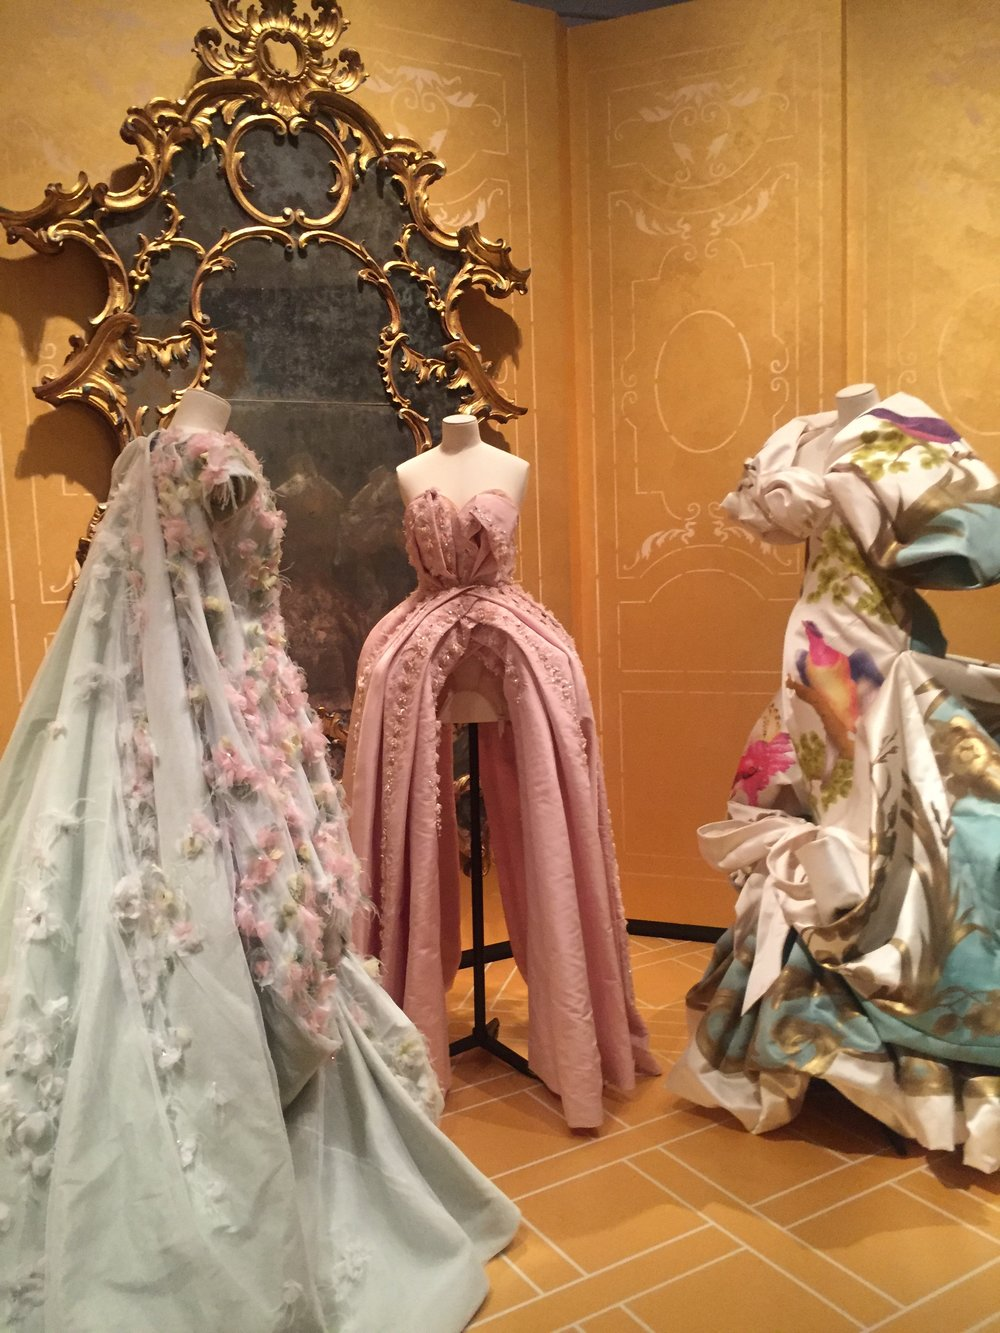 Dior was a fan of 18th century French design and his beloved Granville garden home. Each designer display their interpretations by using 3-D flowers, pastel hues, and delicate fabrics